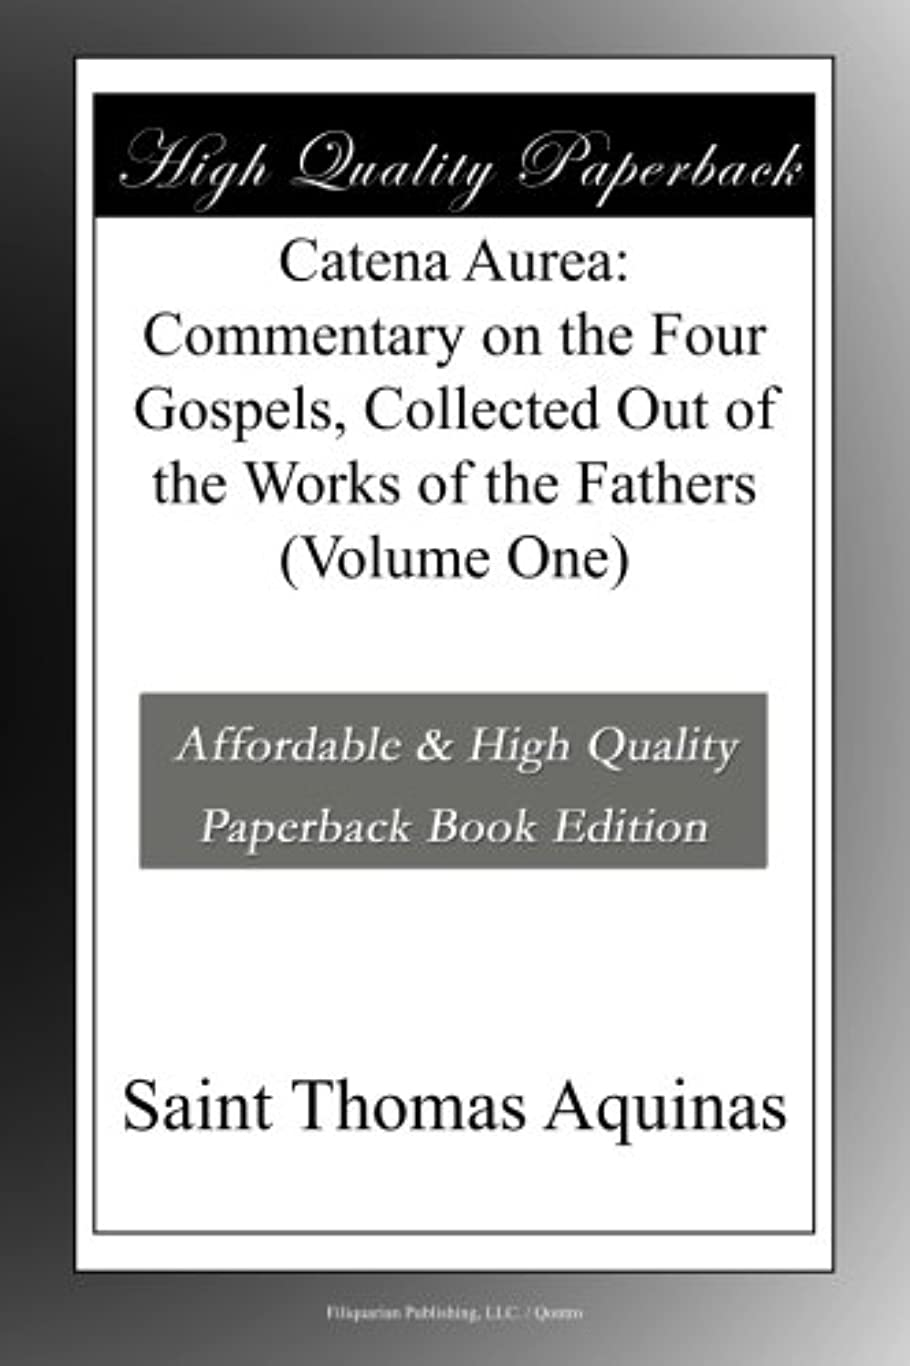 明快フィットネス改修Catena Aurea: Commentary on the Four Gospels, Collected Out of the Works of the Fathers (Volume One)